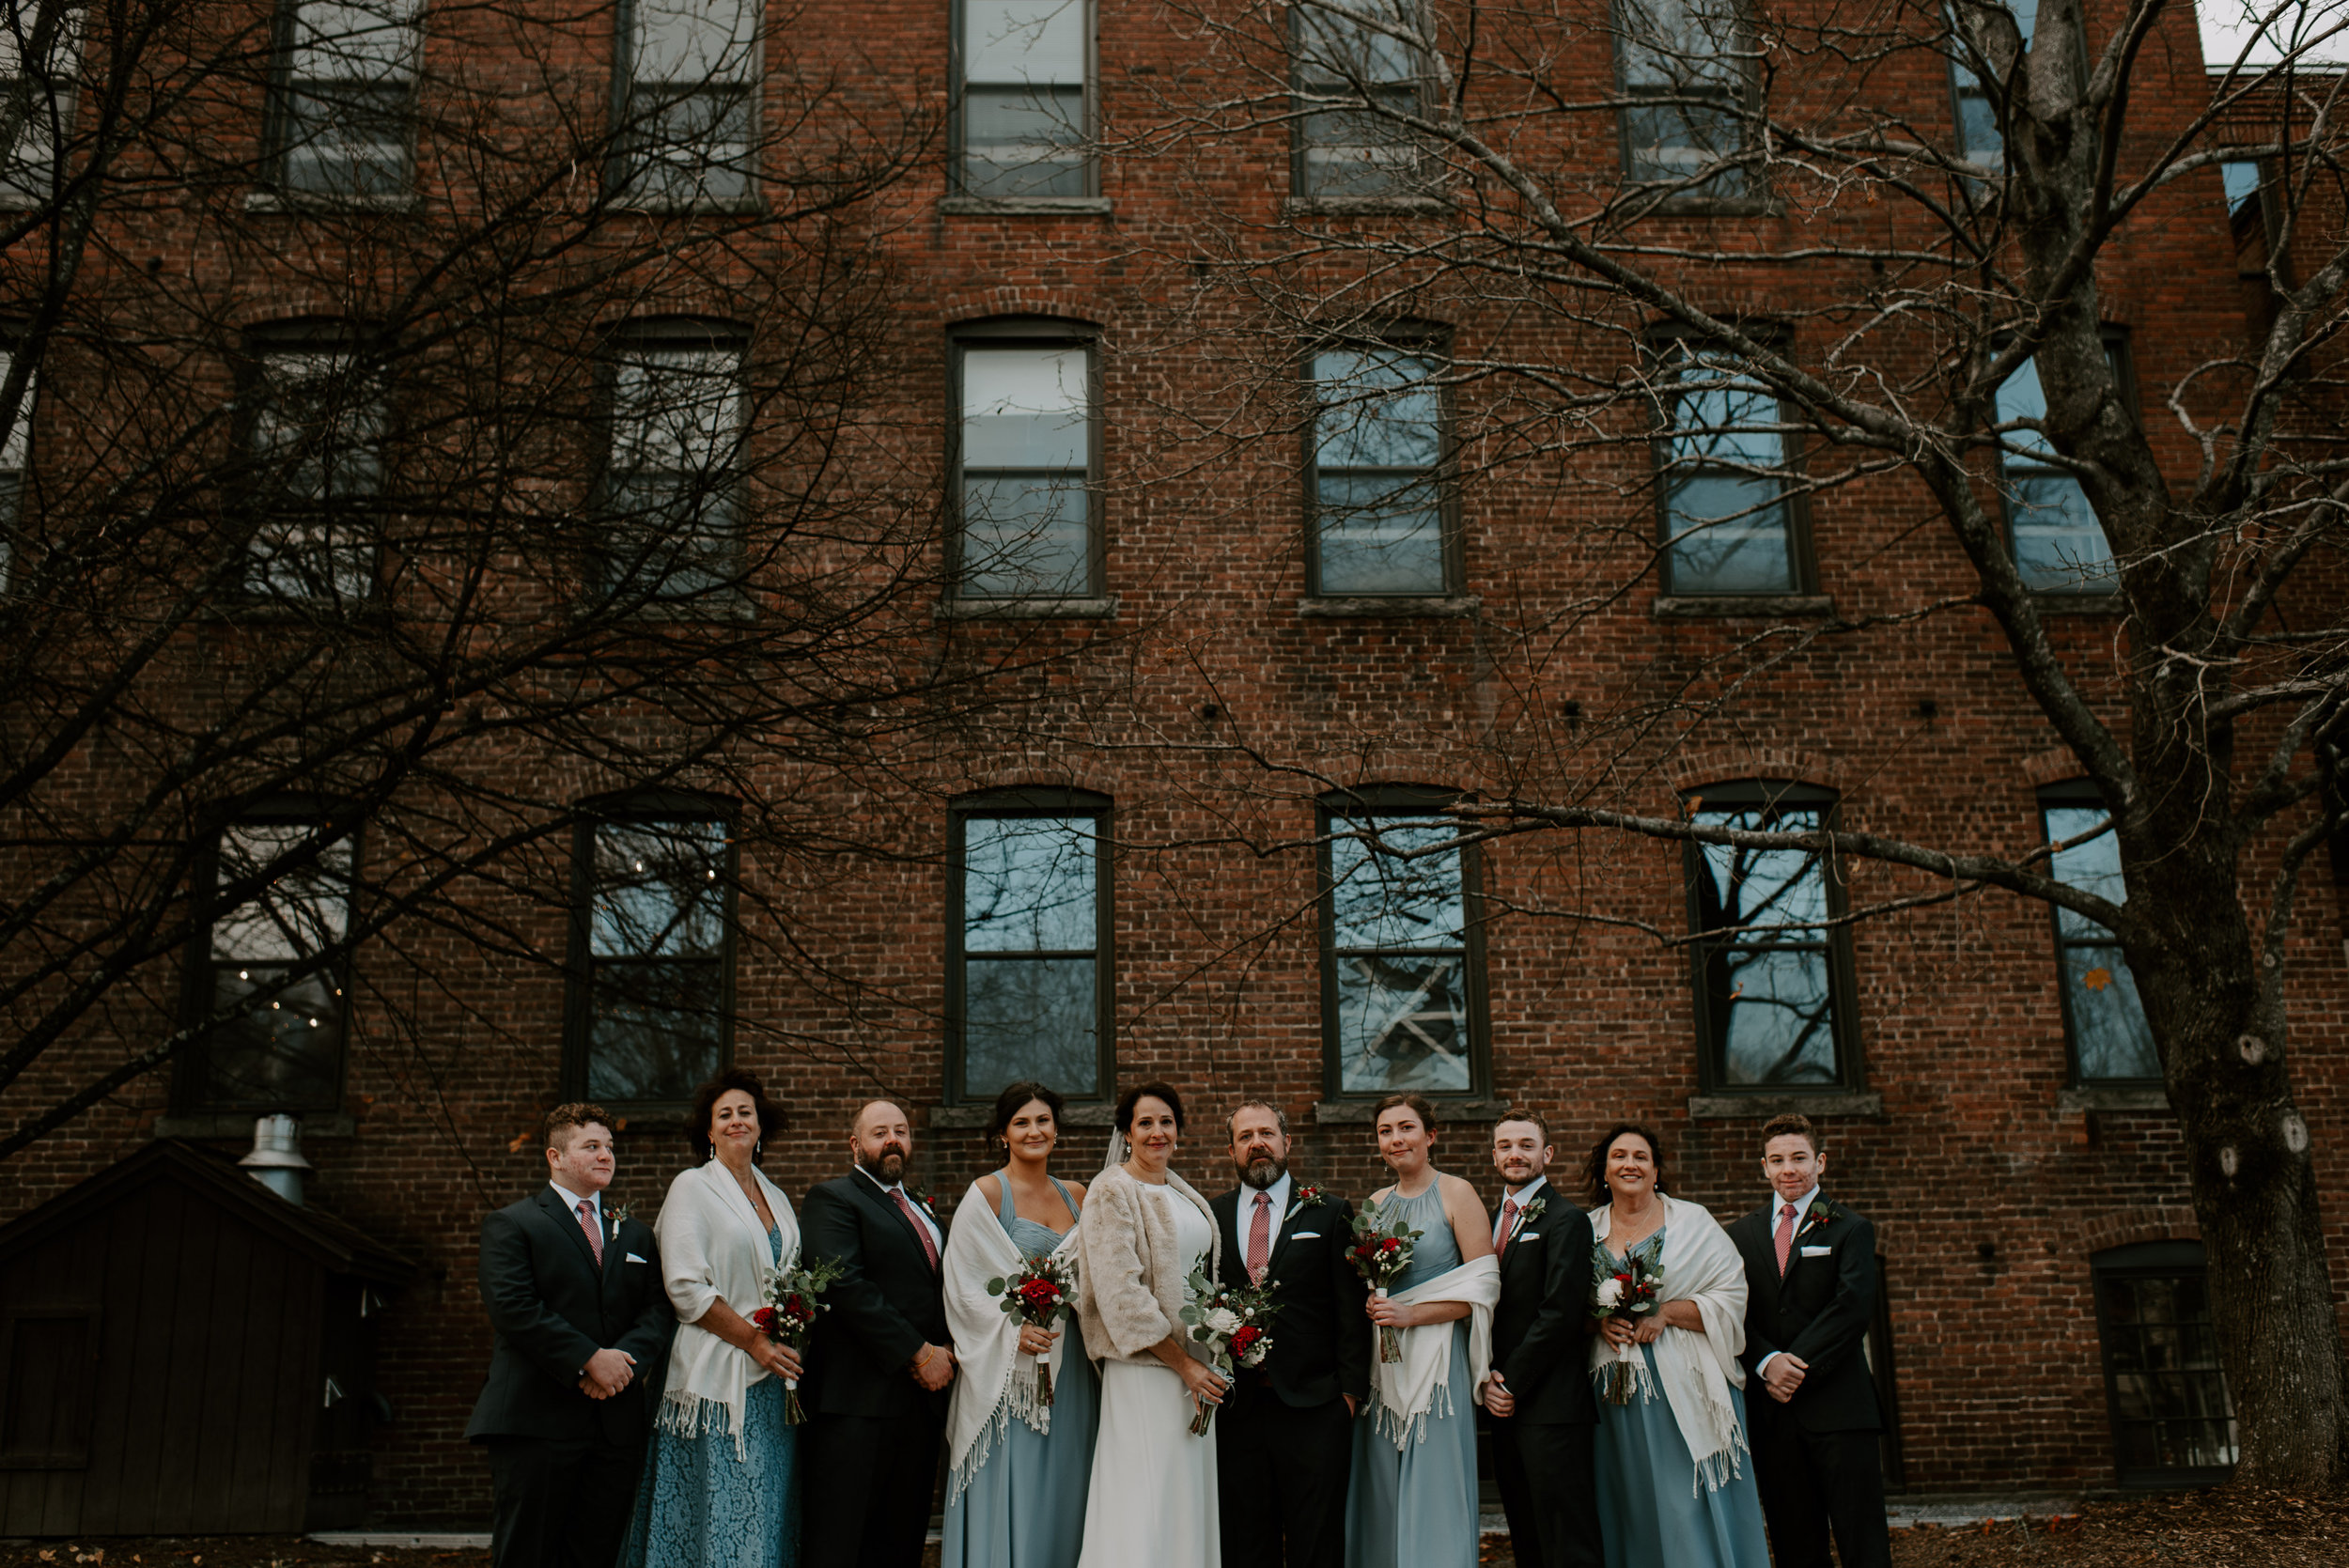 Suzanne and Scott's Industrial Stationary Factory Wedding   Berkshires Wedding Photographer   Madeline Rose Photography Co.